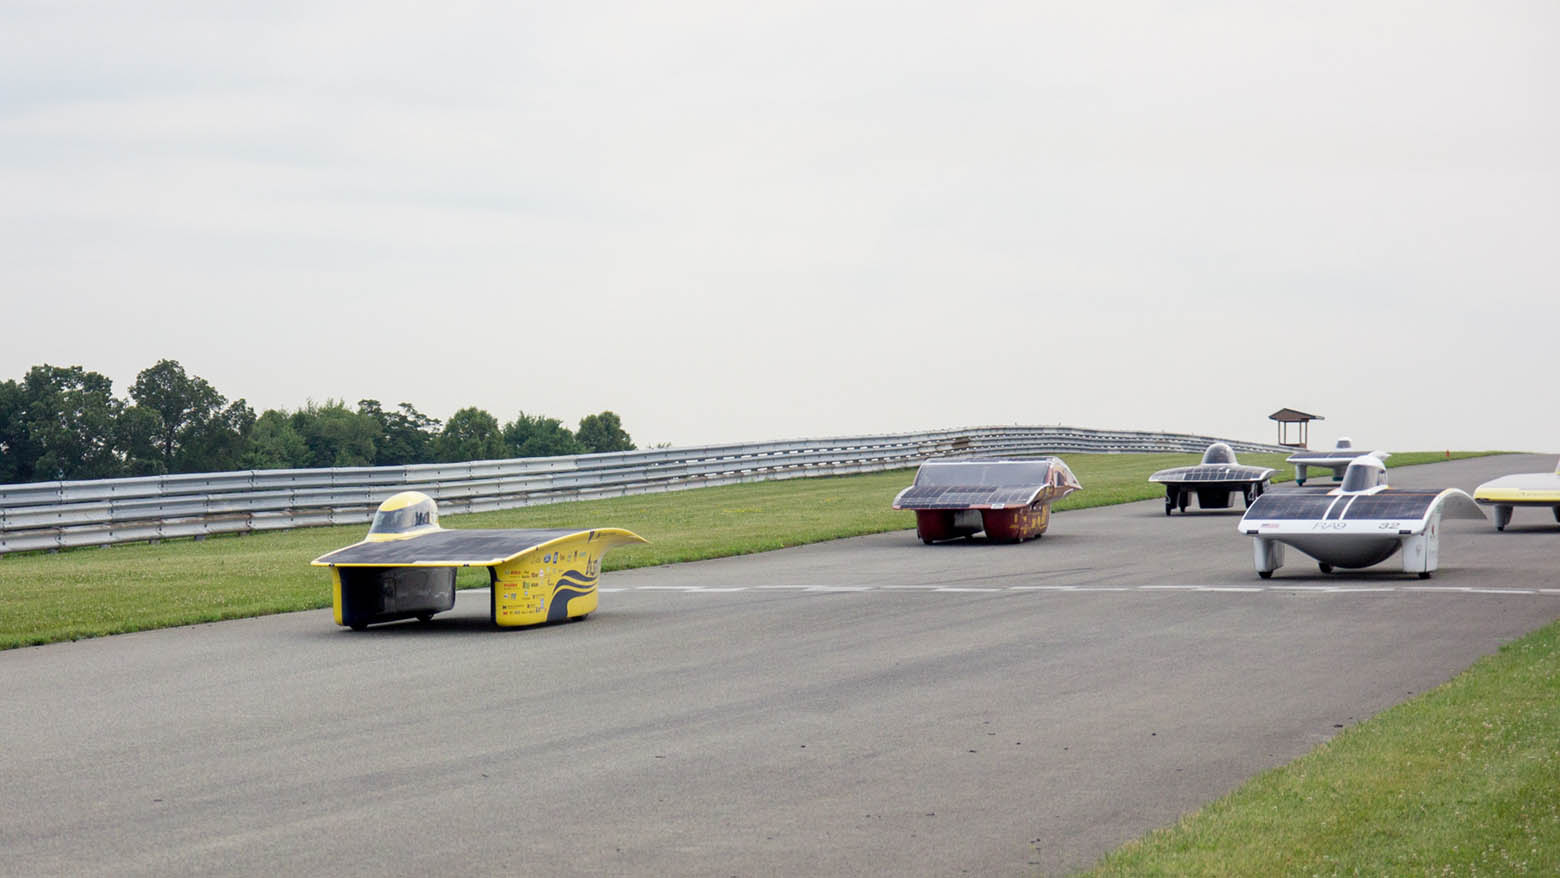 Aurum, the Michigan Solar Car, leads a pack of solar cars across the starting line at a race track.